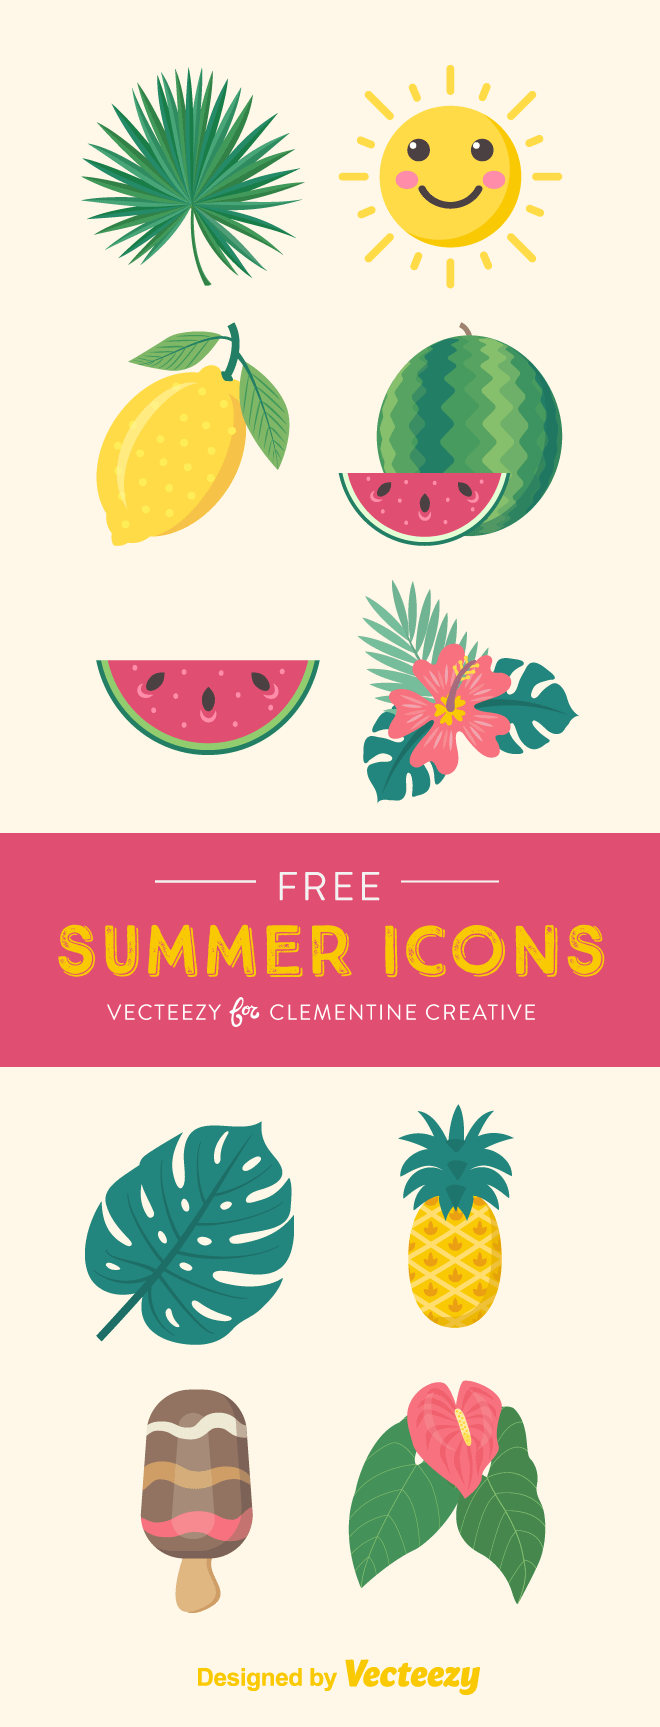 Free summer icons for your summer projects. Includes tropical leaves, lemon, watermelon, ice-cream, pineapple. Click here to download these icons as vectors and PNG.